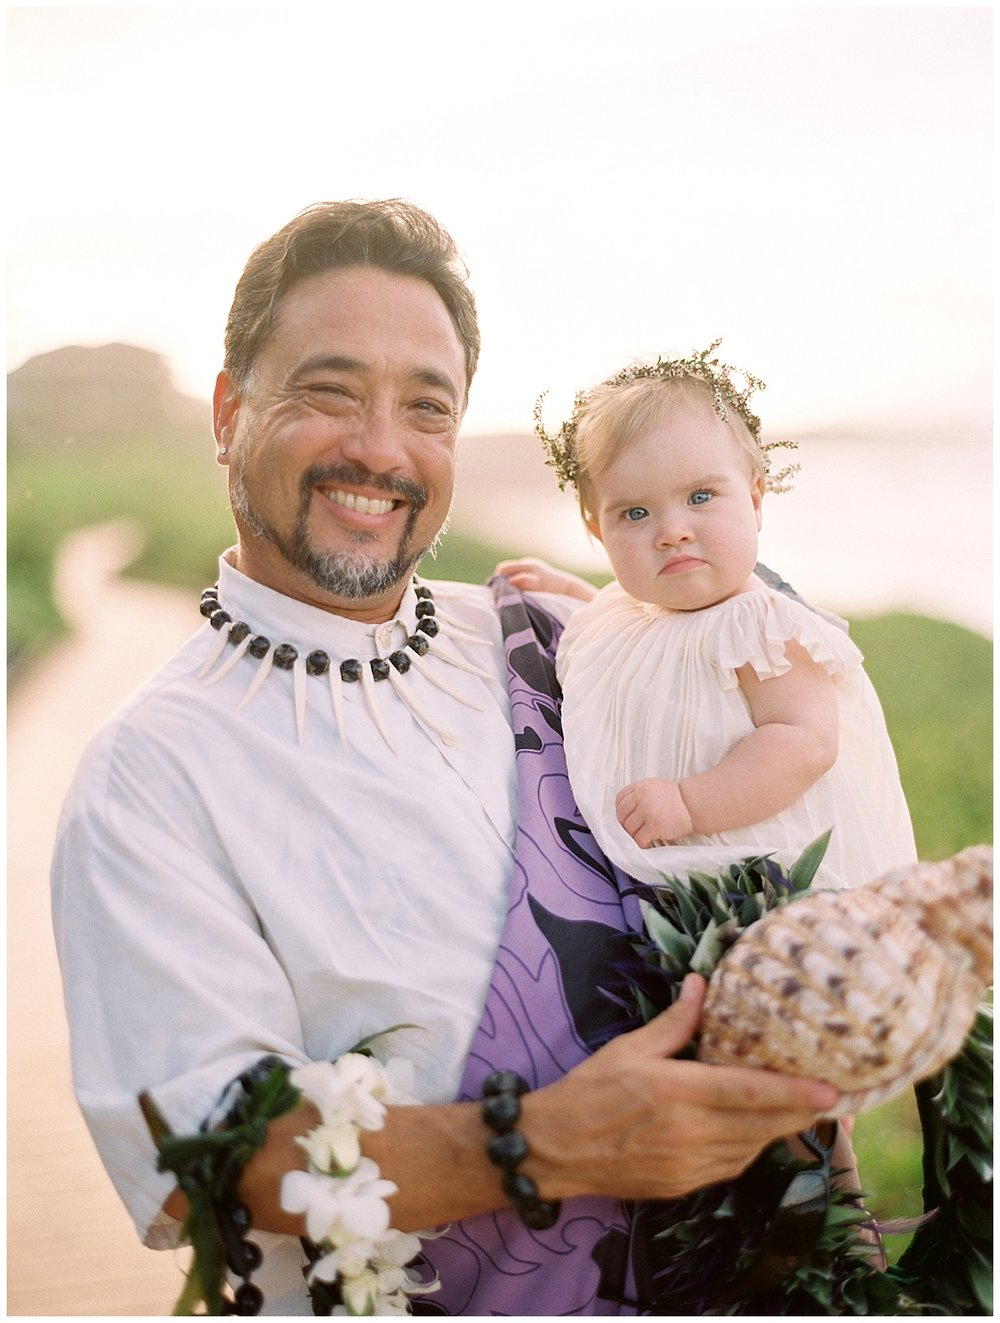 beach-elopement-hawaii-officiant-holding-baby.jpg